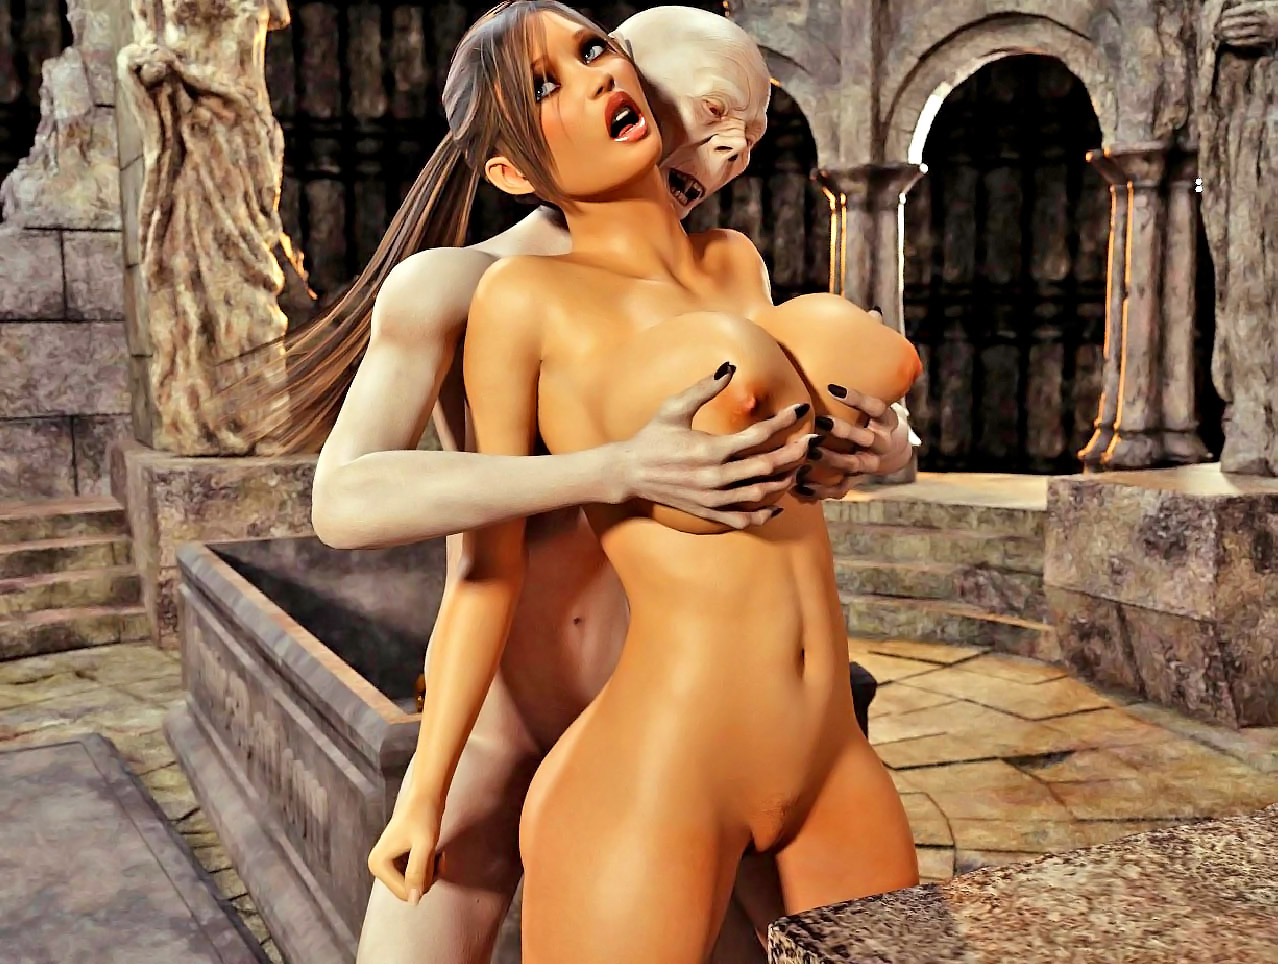 Laracroft tomb rider porn naked download